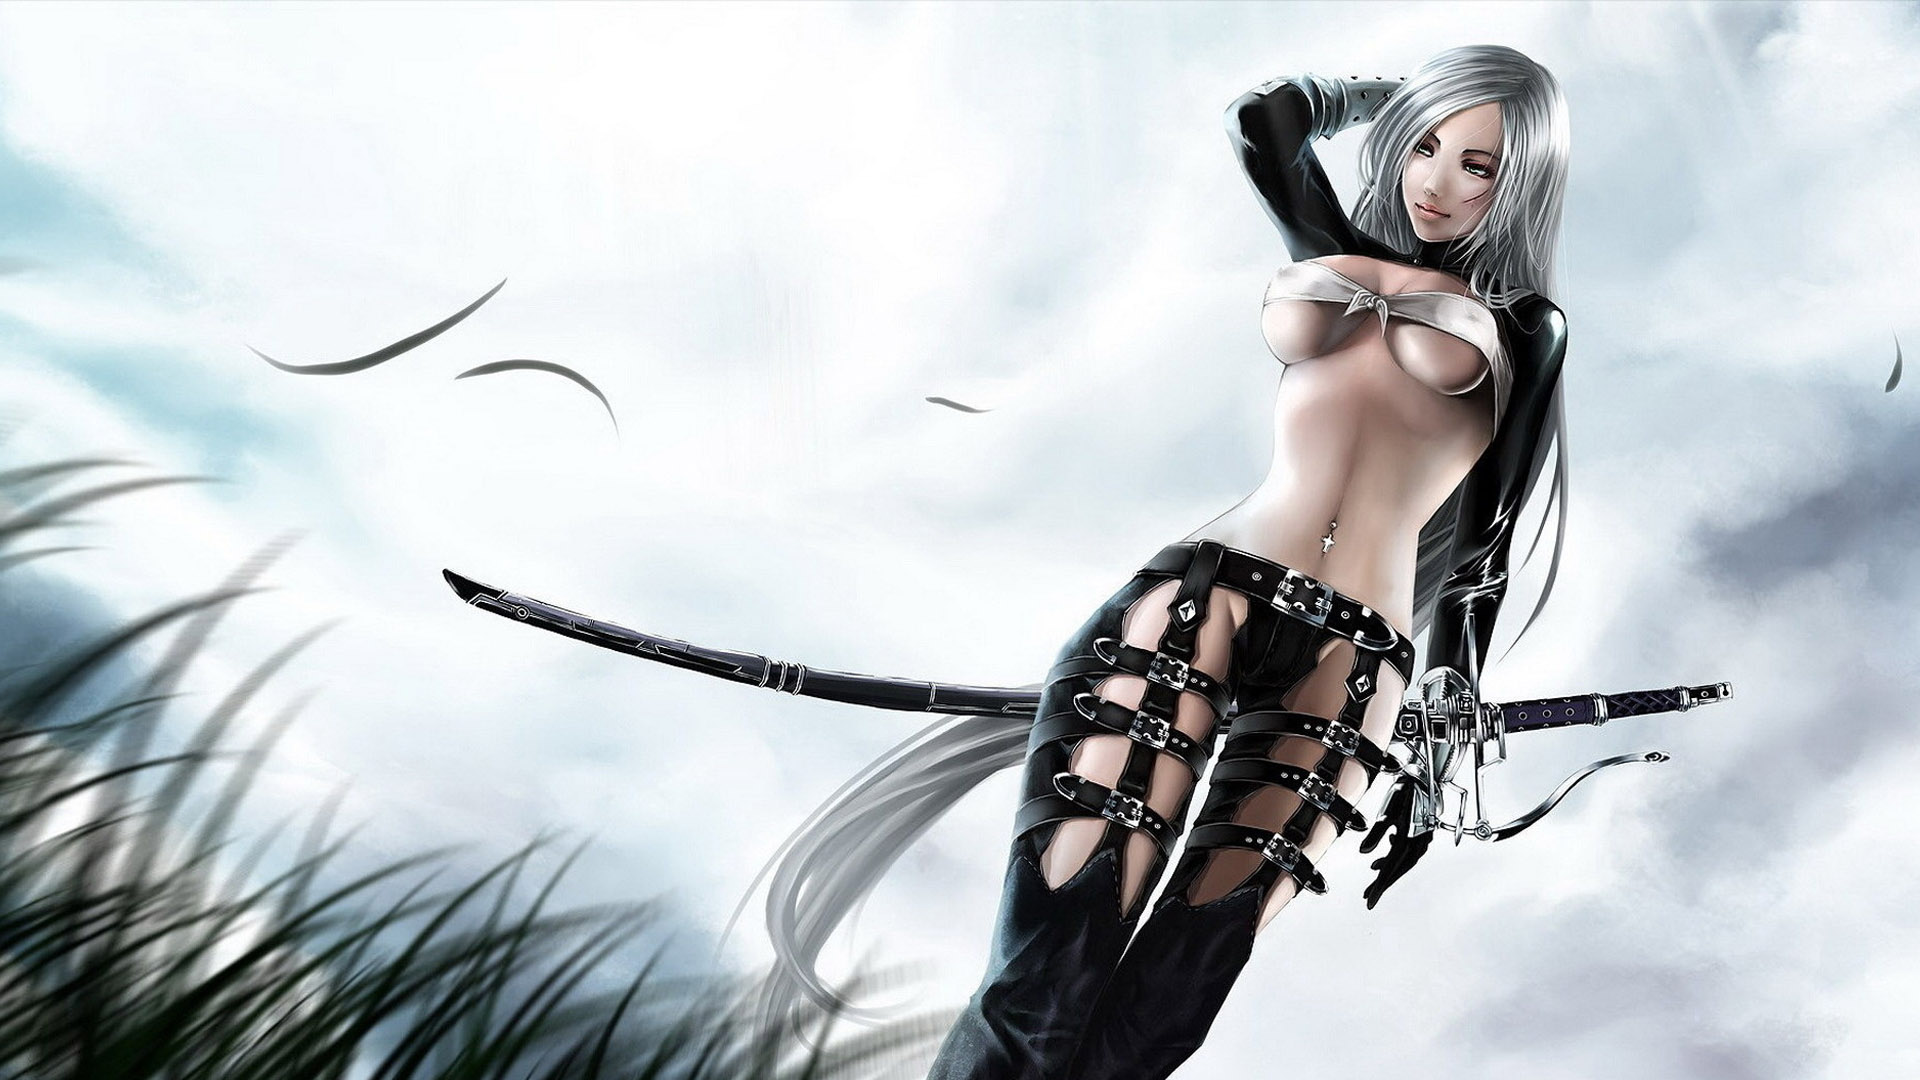 Manga warrior chick naked hd wallpaper naked videos